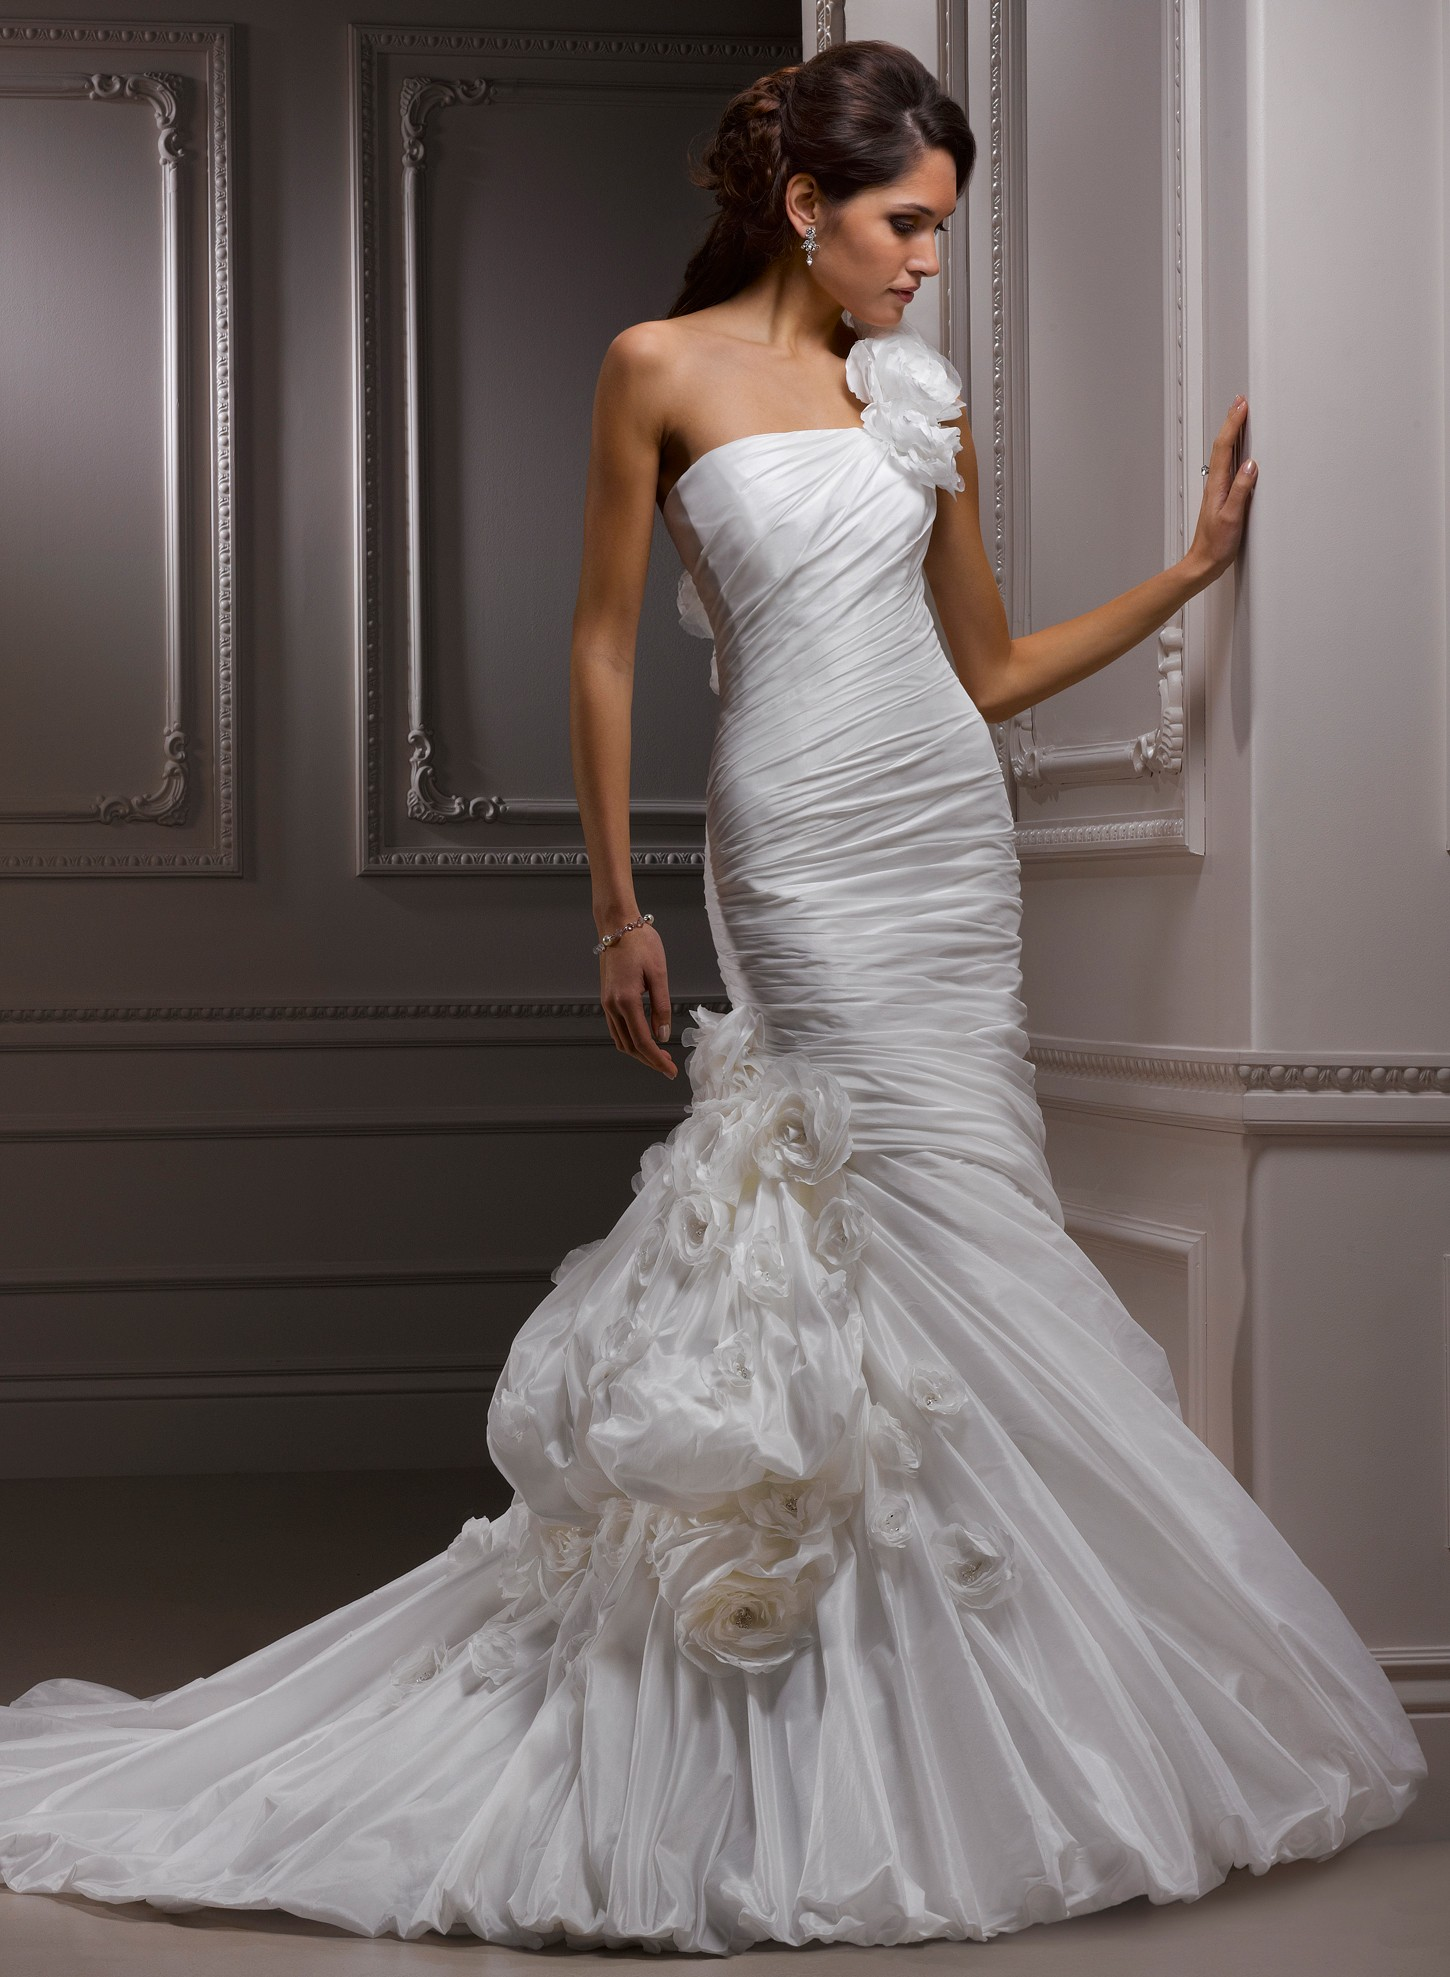 best mermaid wedding dresses BcmRgrMevEpJTEn*yfwJzXpNpUMcyXziI mermaid wedding gowns Mermaid